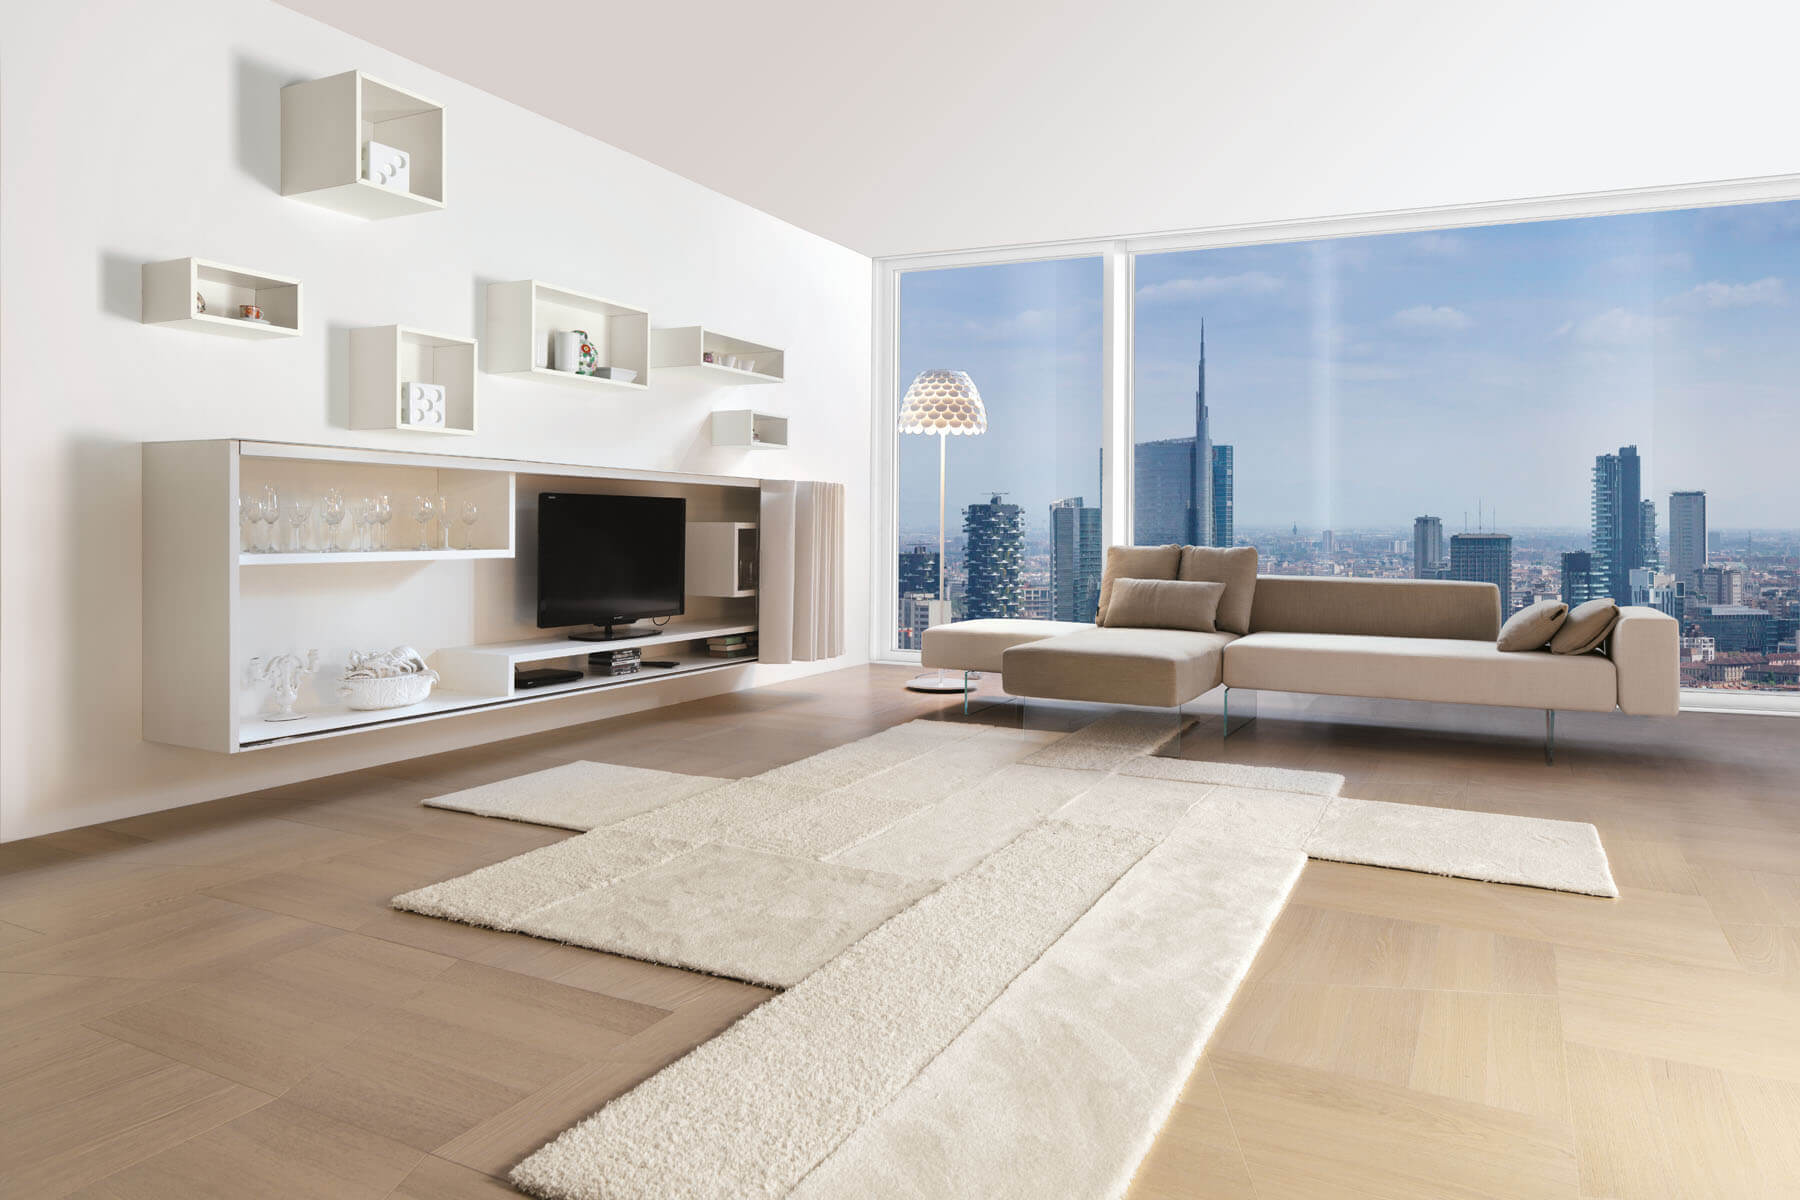 Modern Rugs For The Living Room And Bedroom | LAGO Design